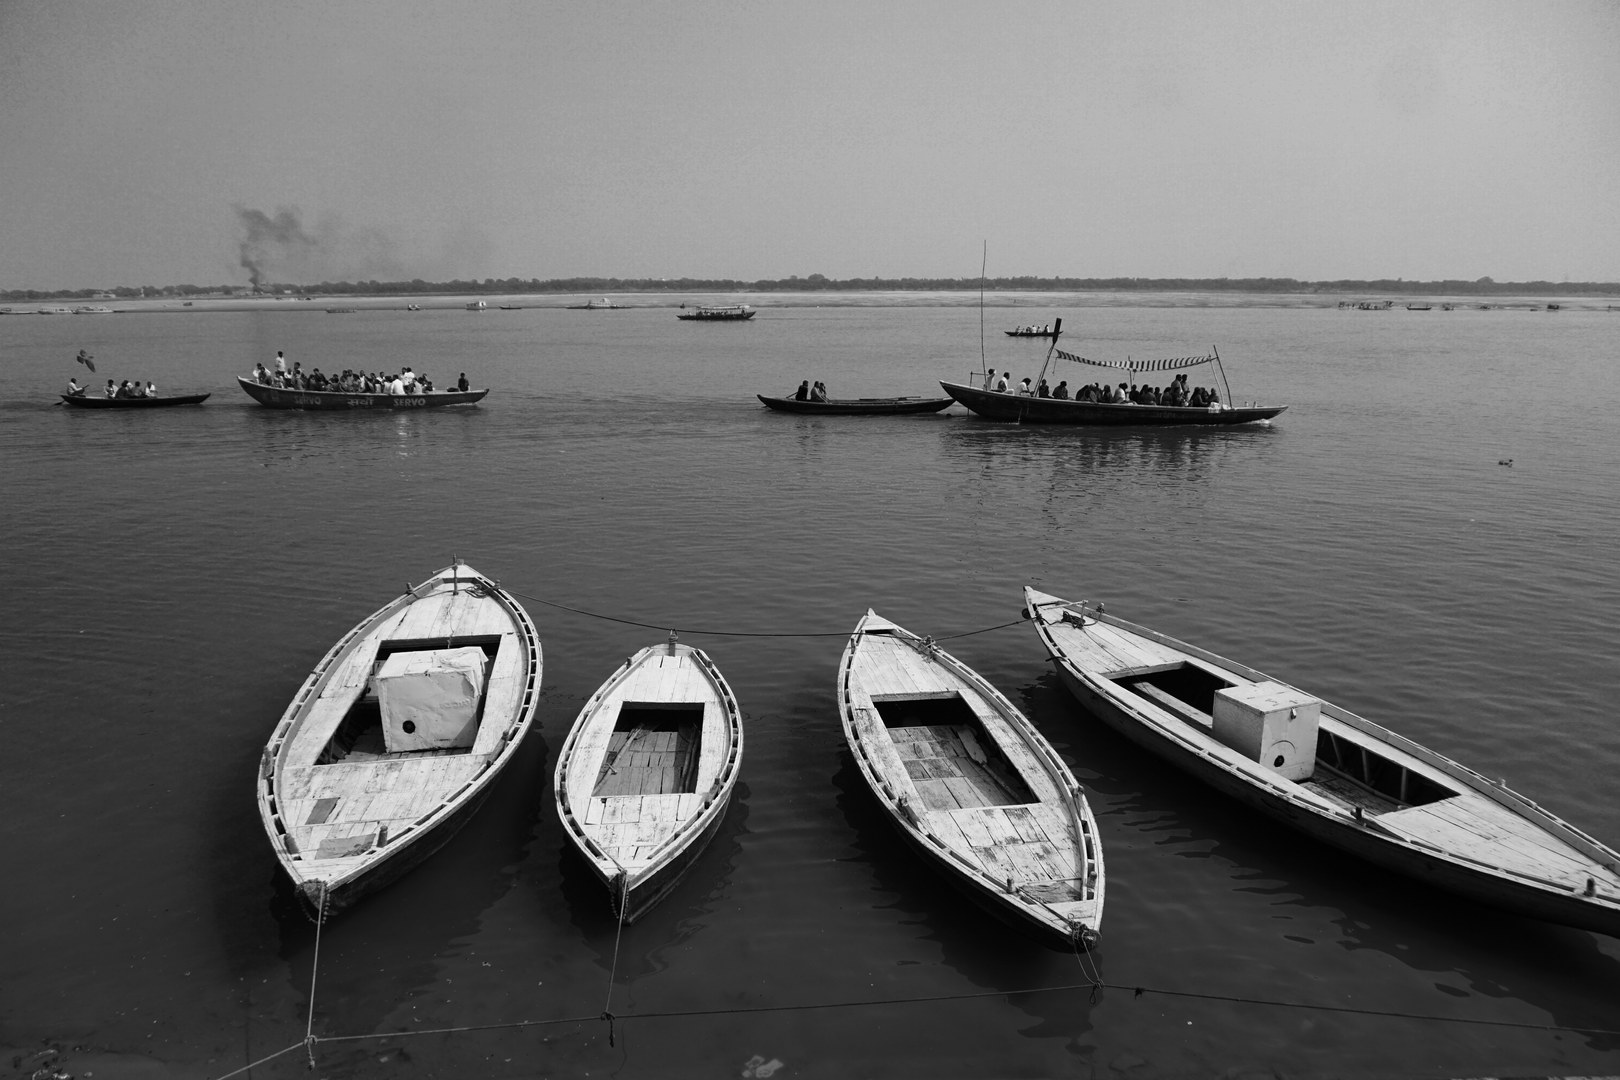 Photograph by :  Archit Mittal